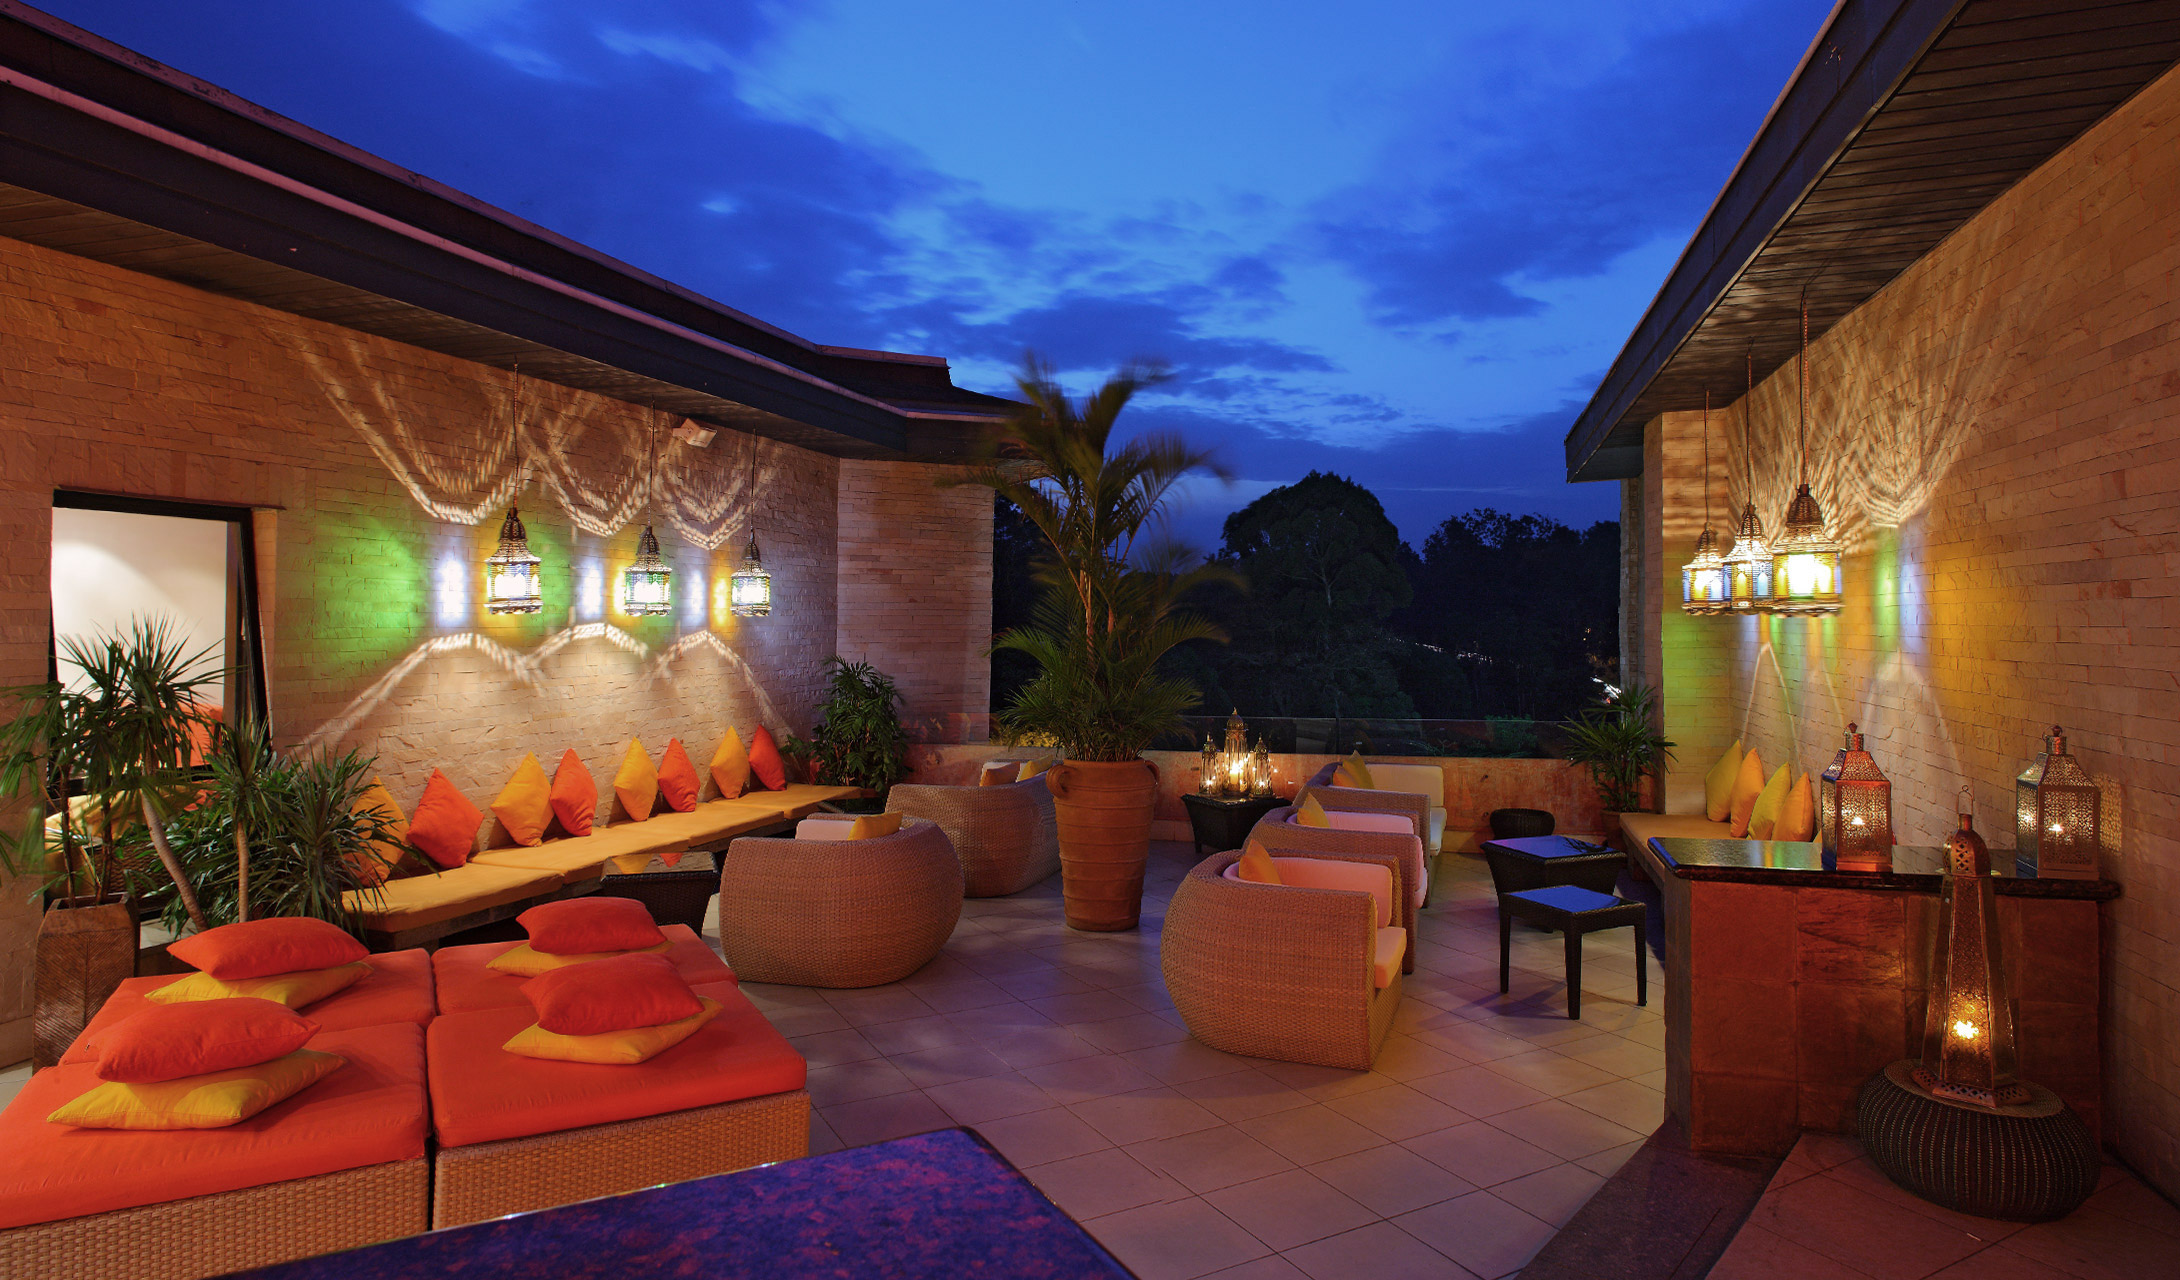 Tribe hotel nairobi kenya design hotels for Designhotel q